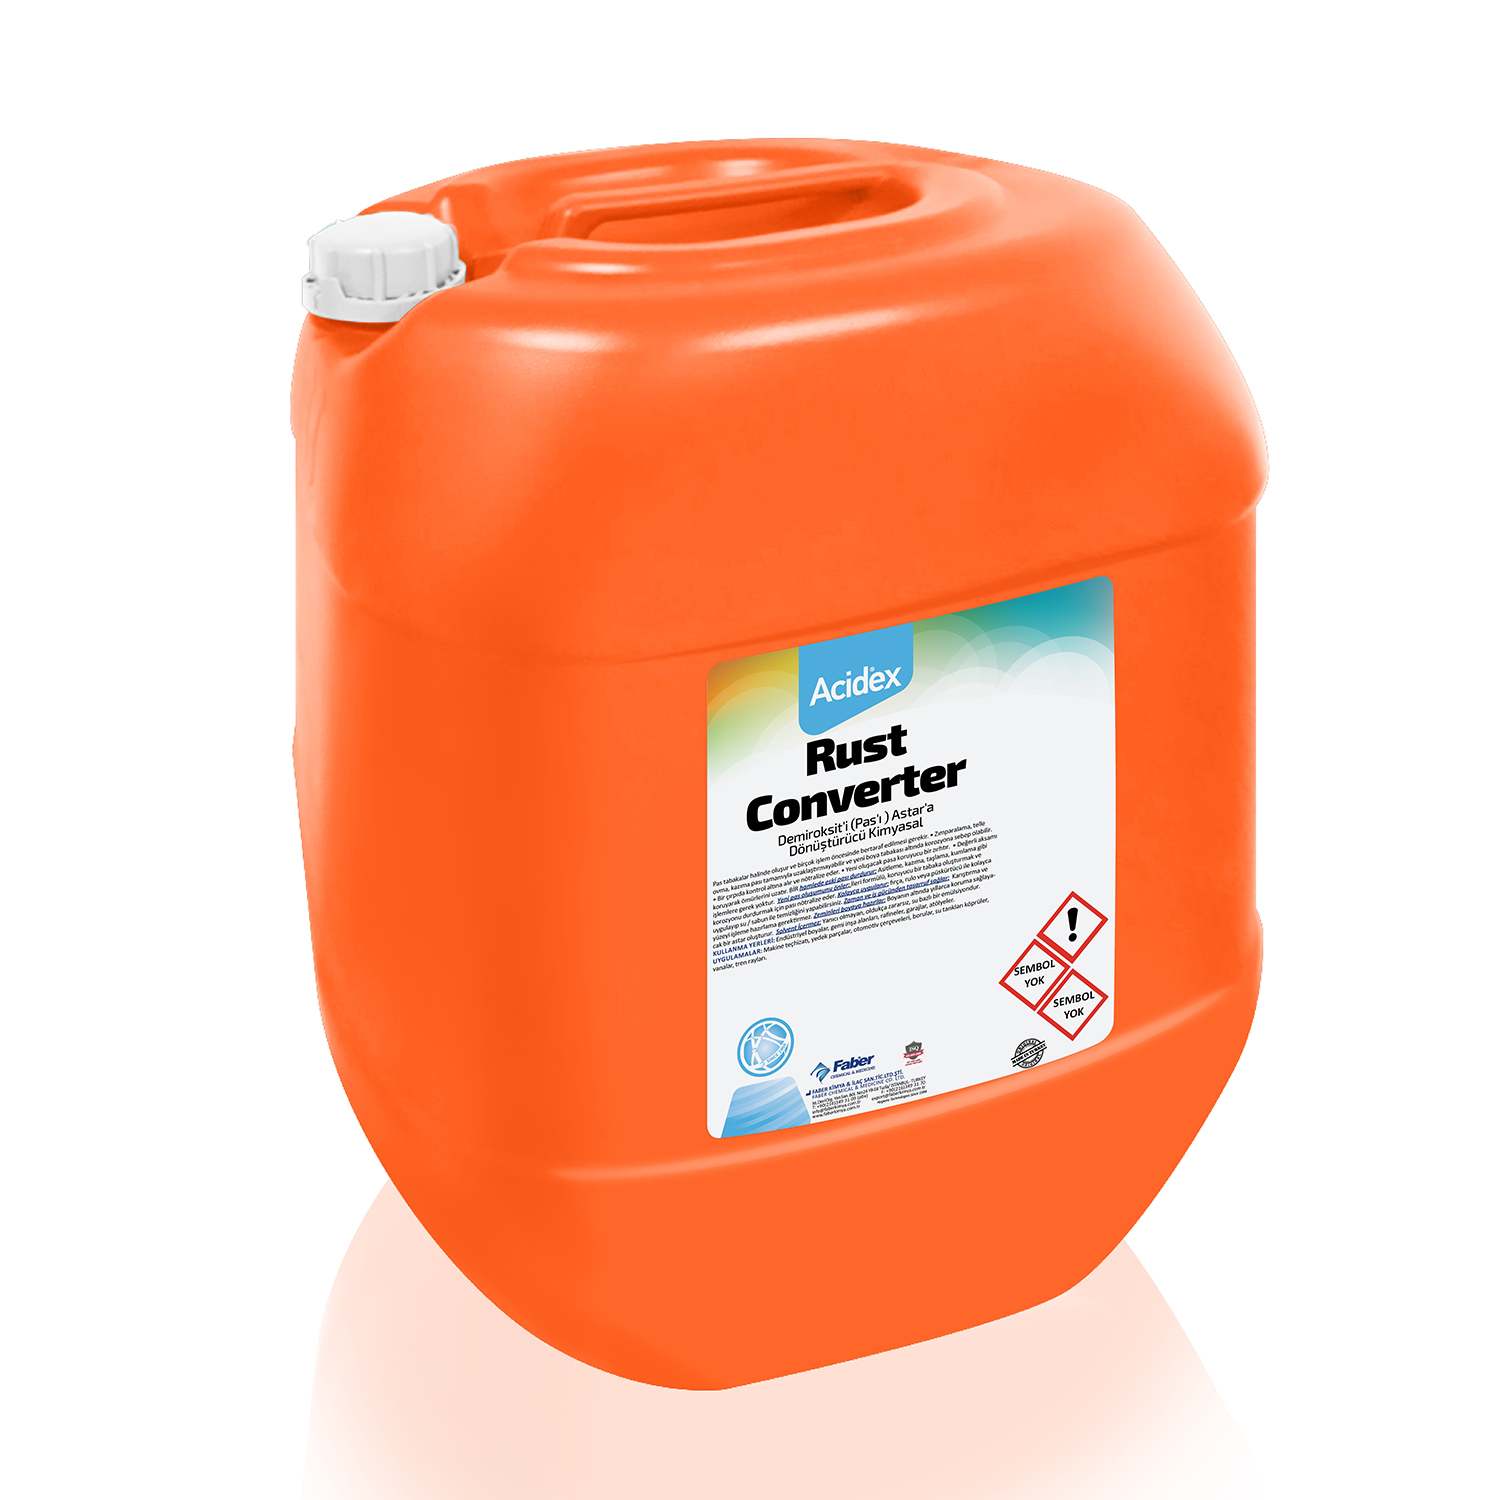 Acidex Rust Converter